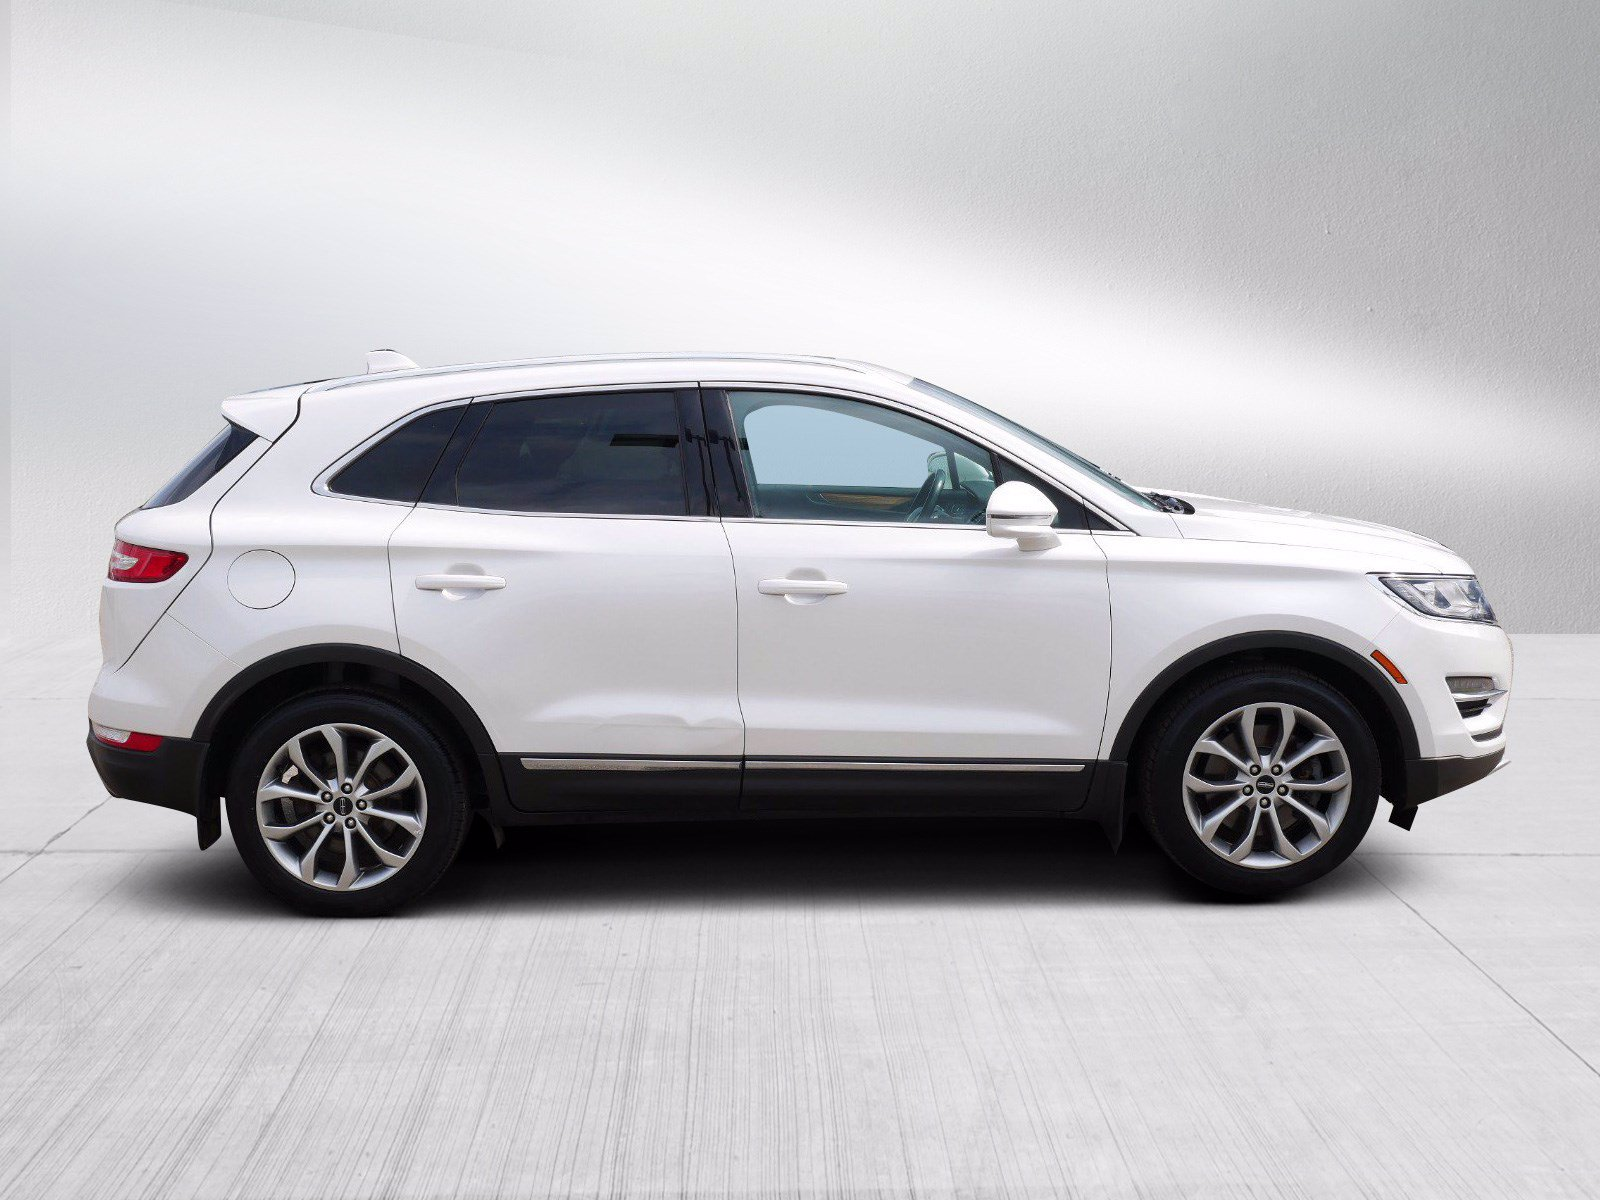 Used 2015 Lincoln MKC  with VIN 5LMCJ2A91FUJ09452 for sale in Bloomington, Minnesota